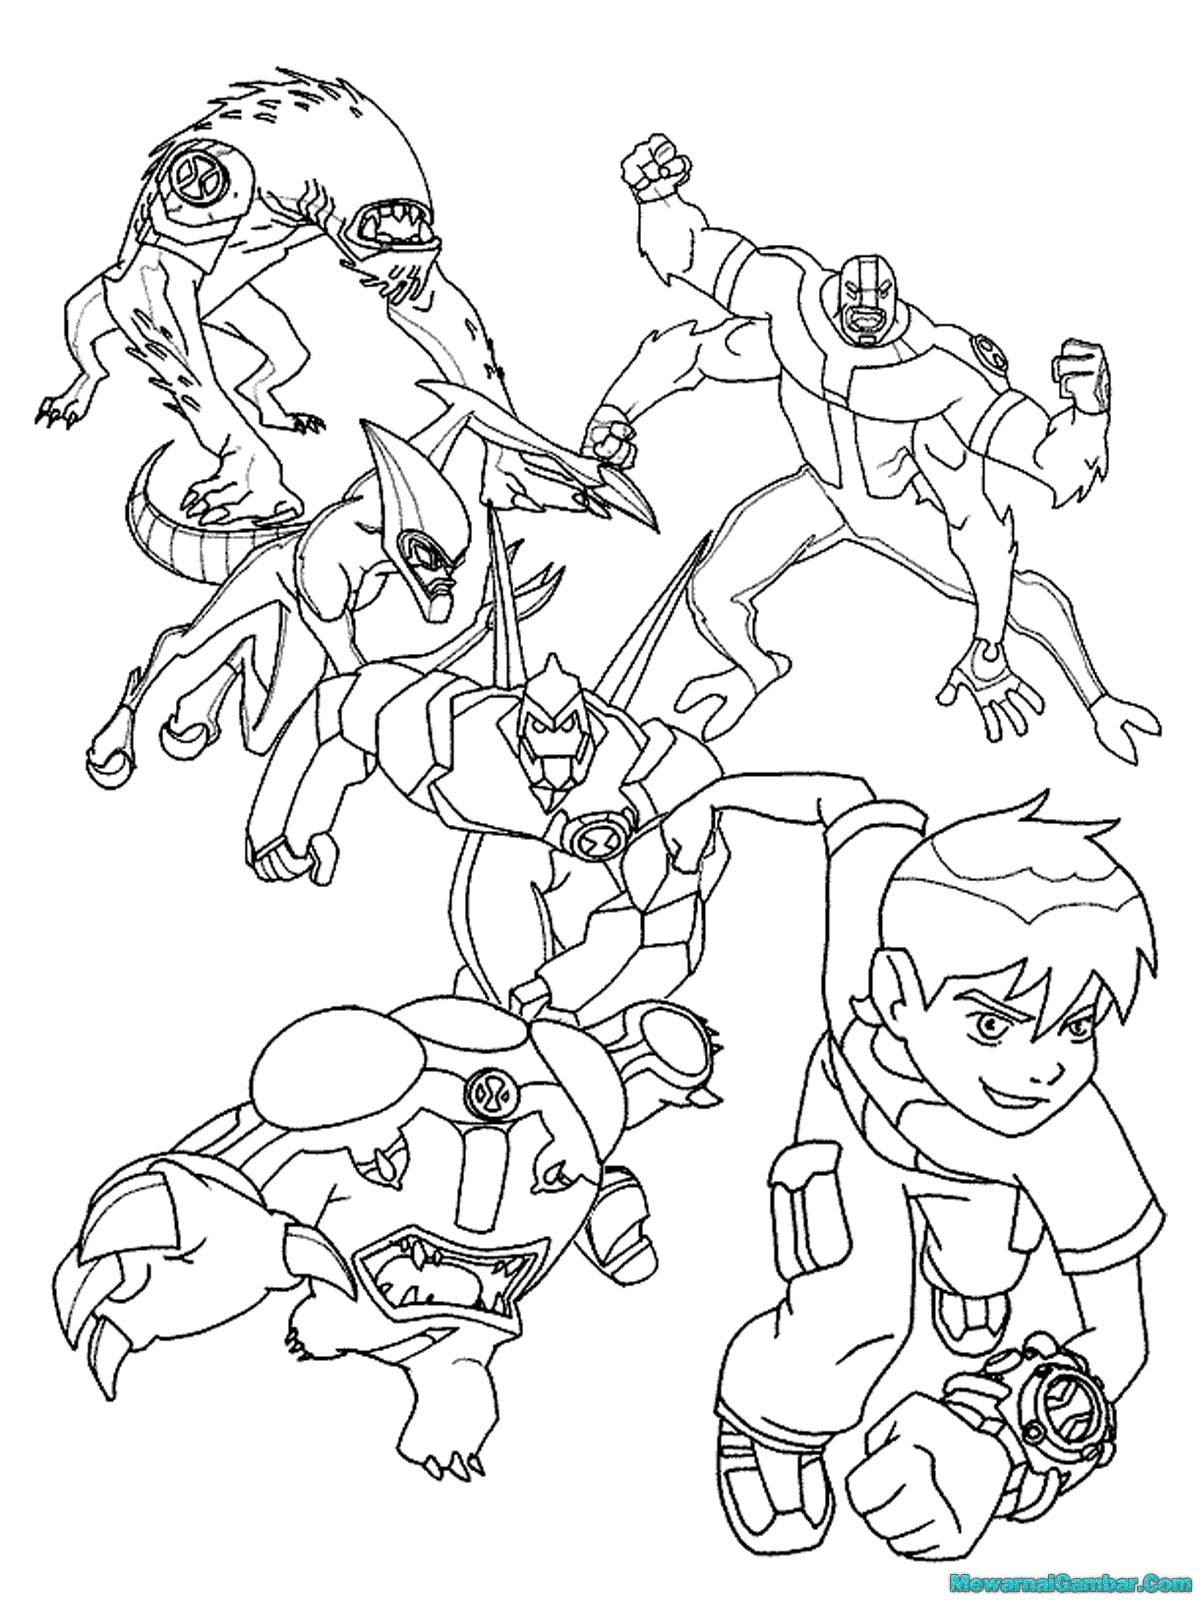 Cartoon Network Ben 10 Coloring Pages